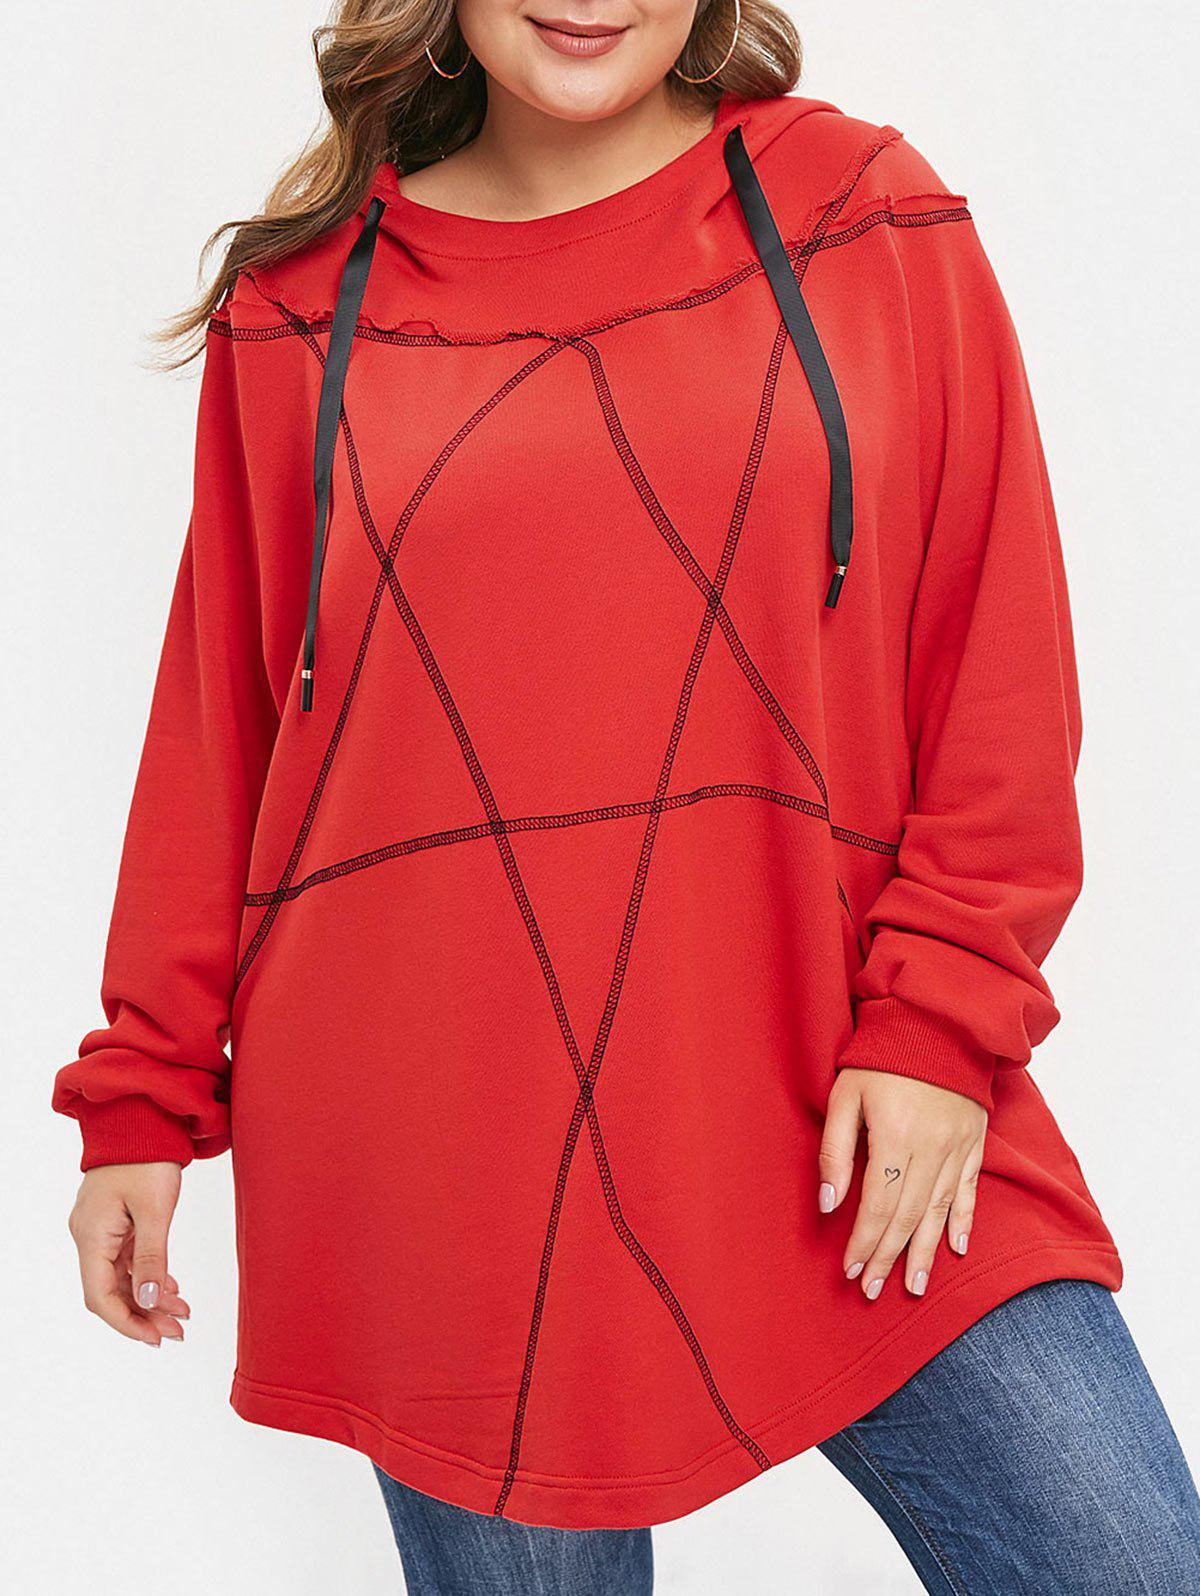 Sweat à Capuche Pull-over Bicolore de Grande Taille Rouge L